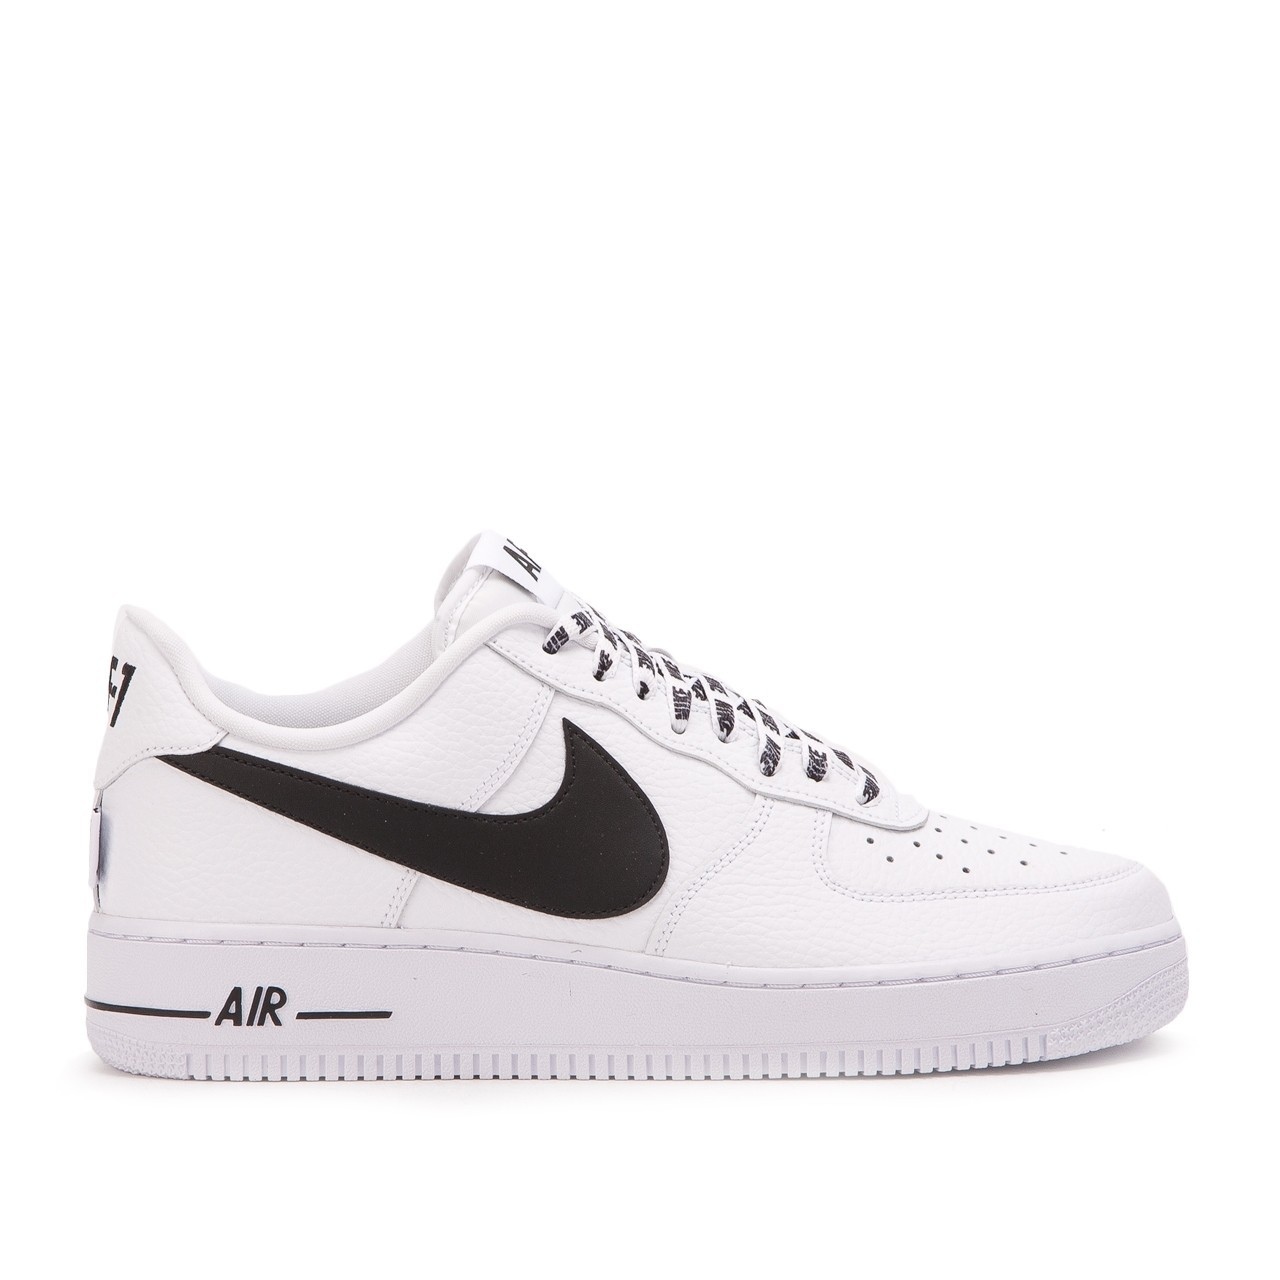 """Nike Air Force 1 Low """"NBA Pack"""" Bianche/Nere 823511-103"""